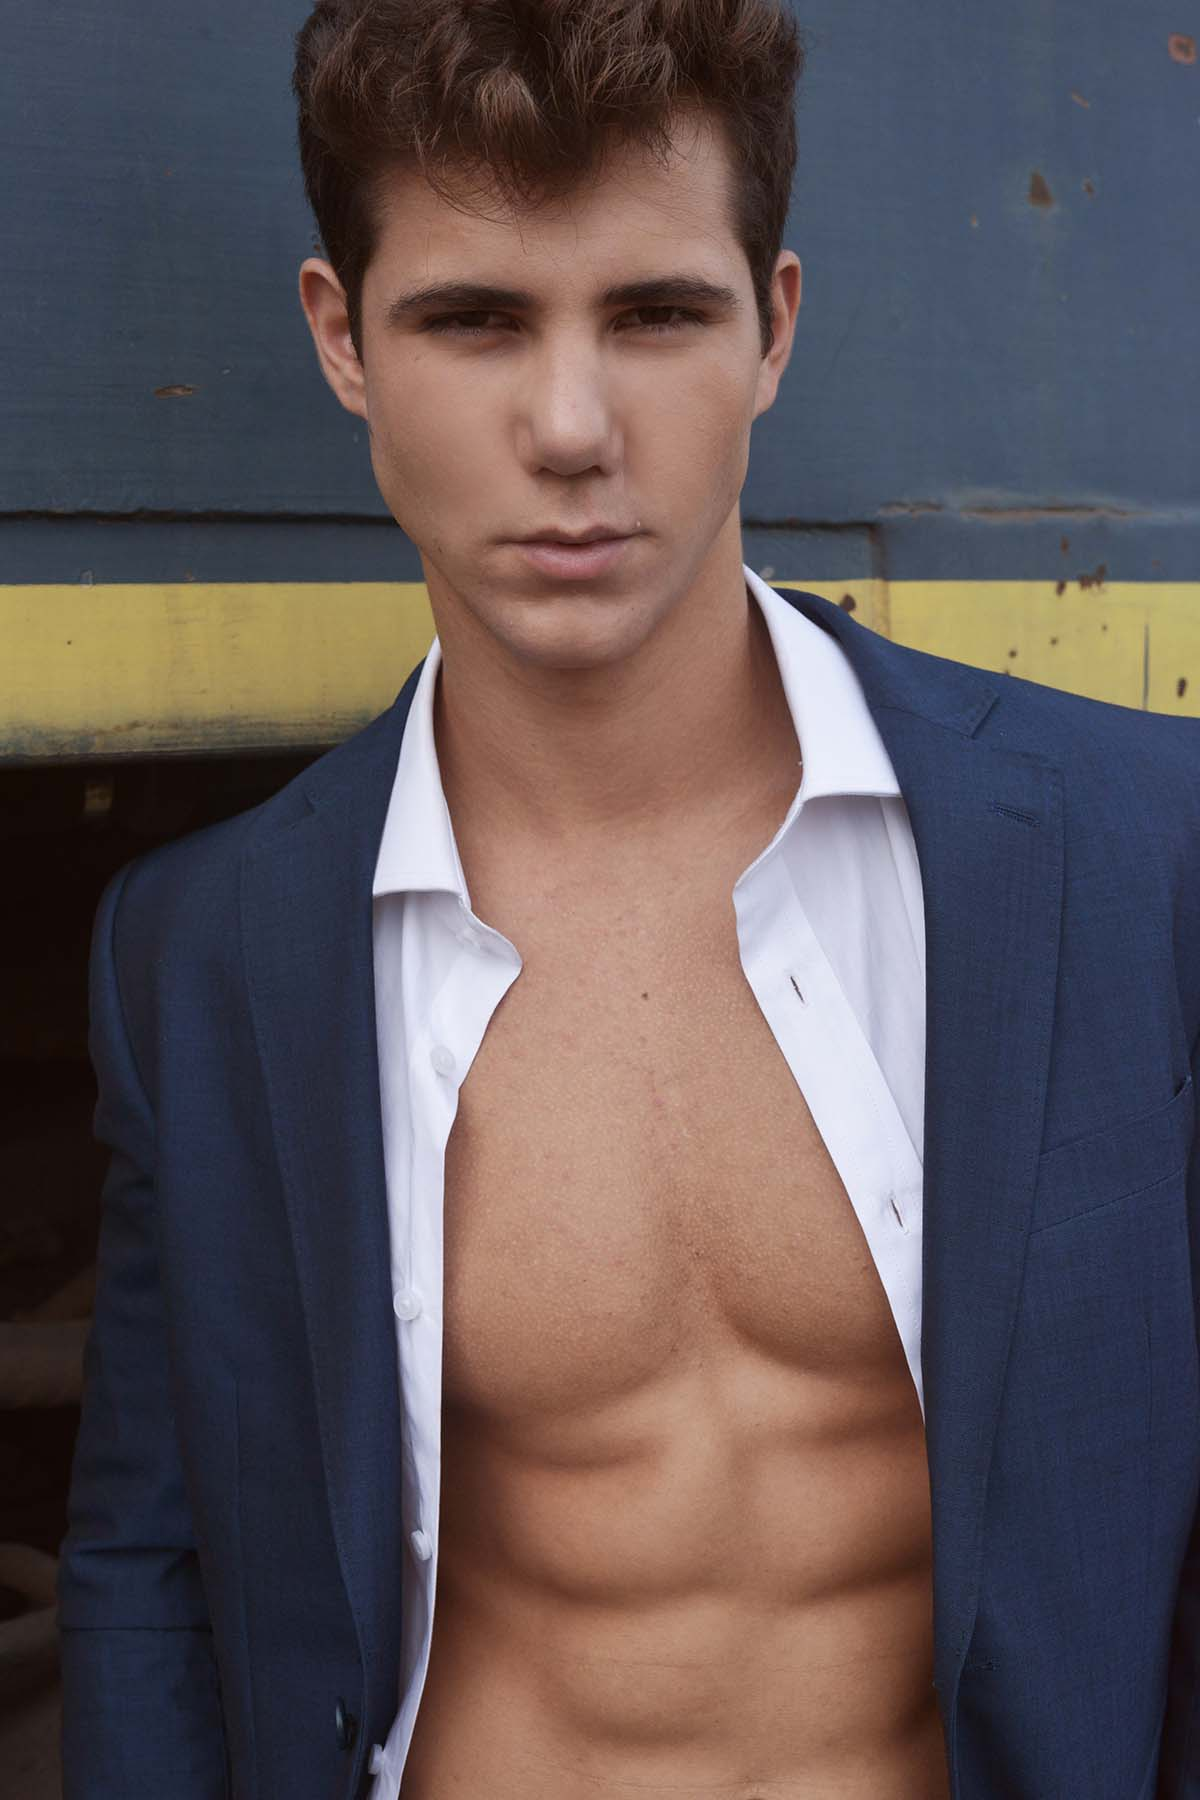 Guilherme Scopel by Rodrigo Marconatto for Brazilian Male Model